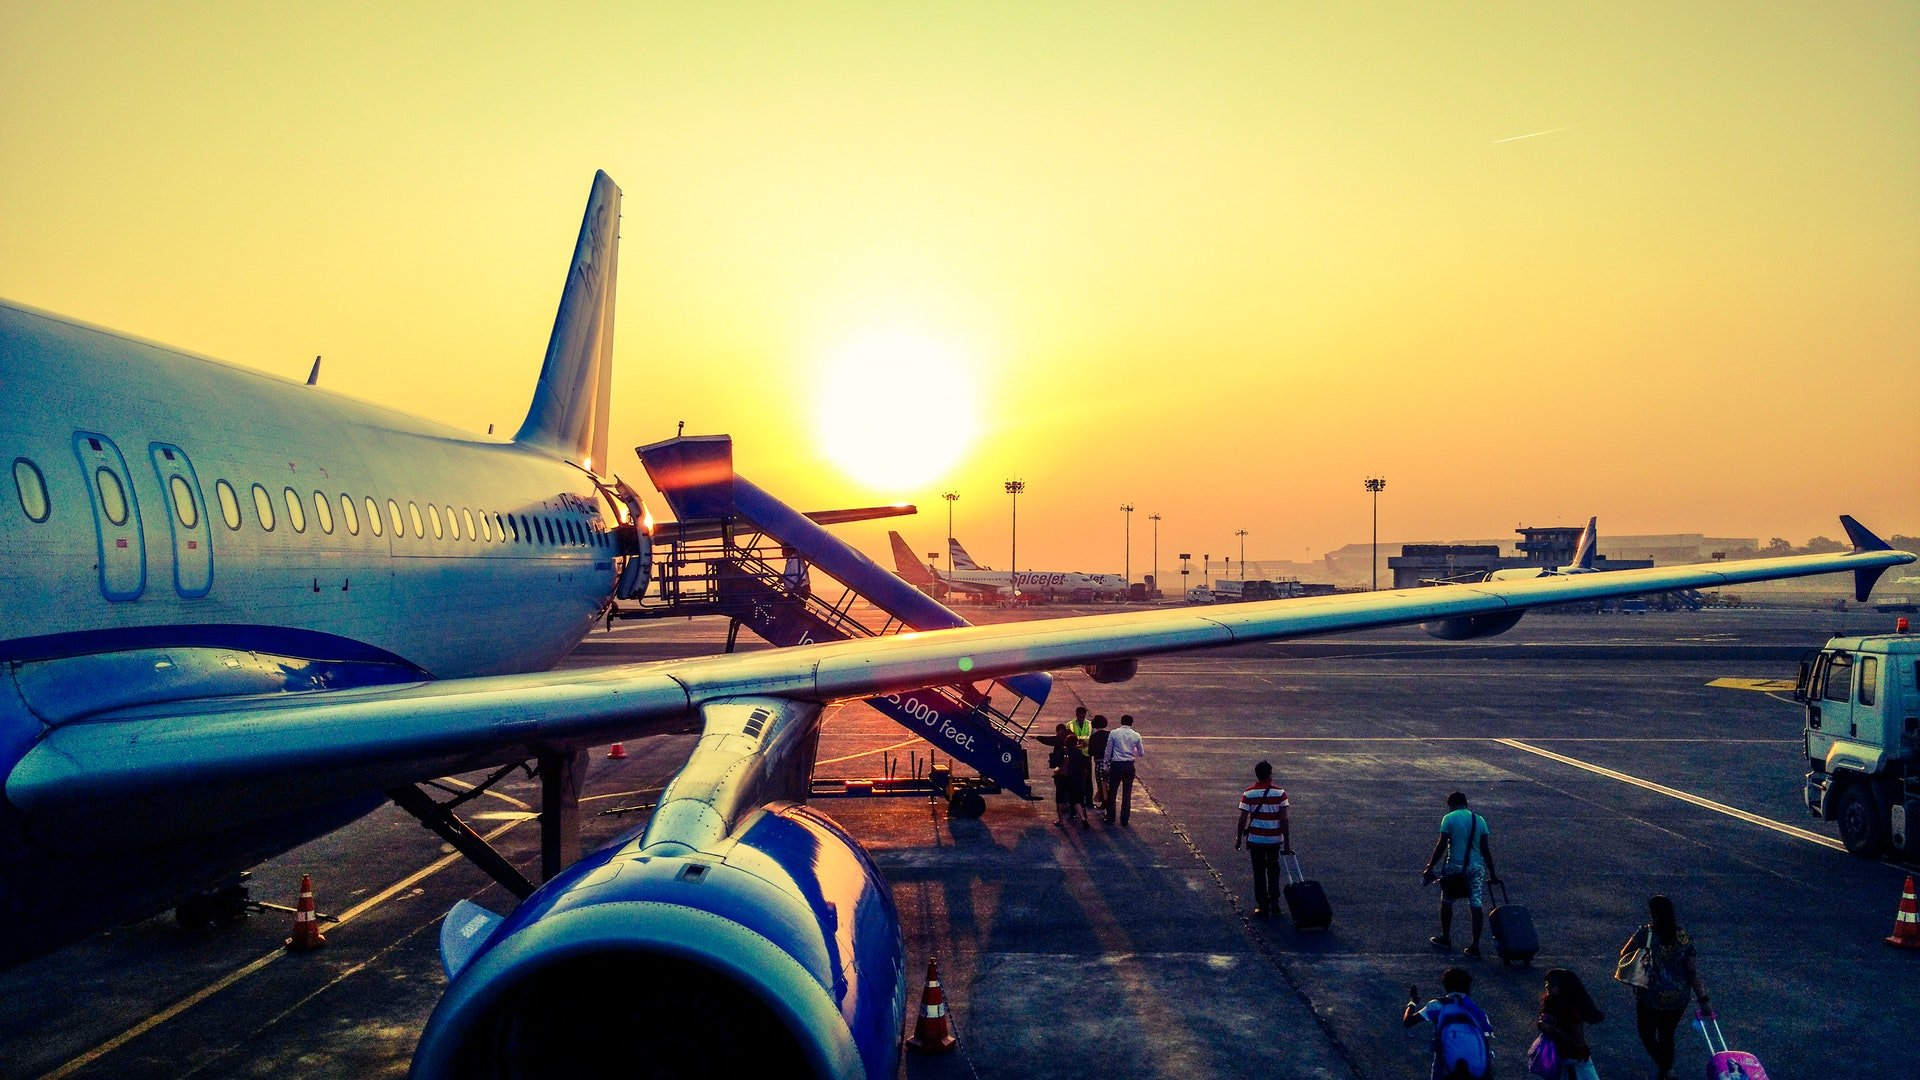 People boarding a plane | Photo: Pexels/Anugrah Lohiya